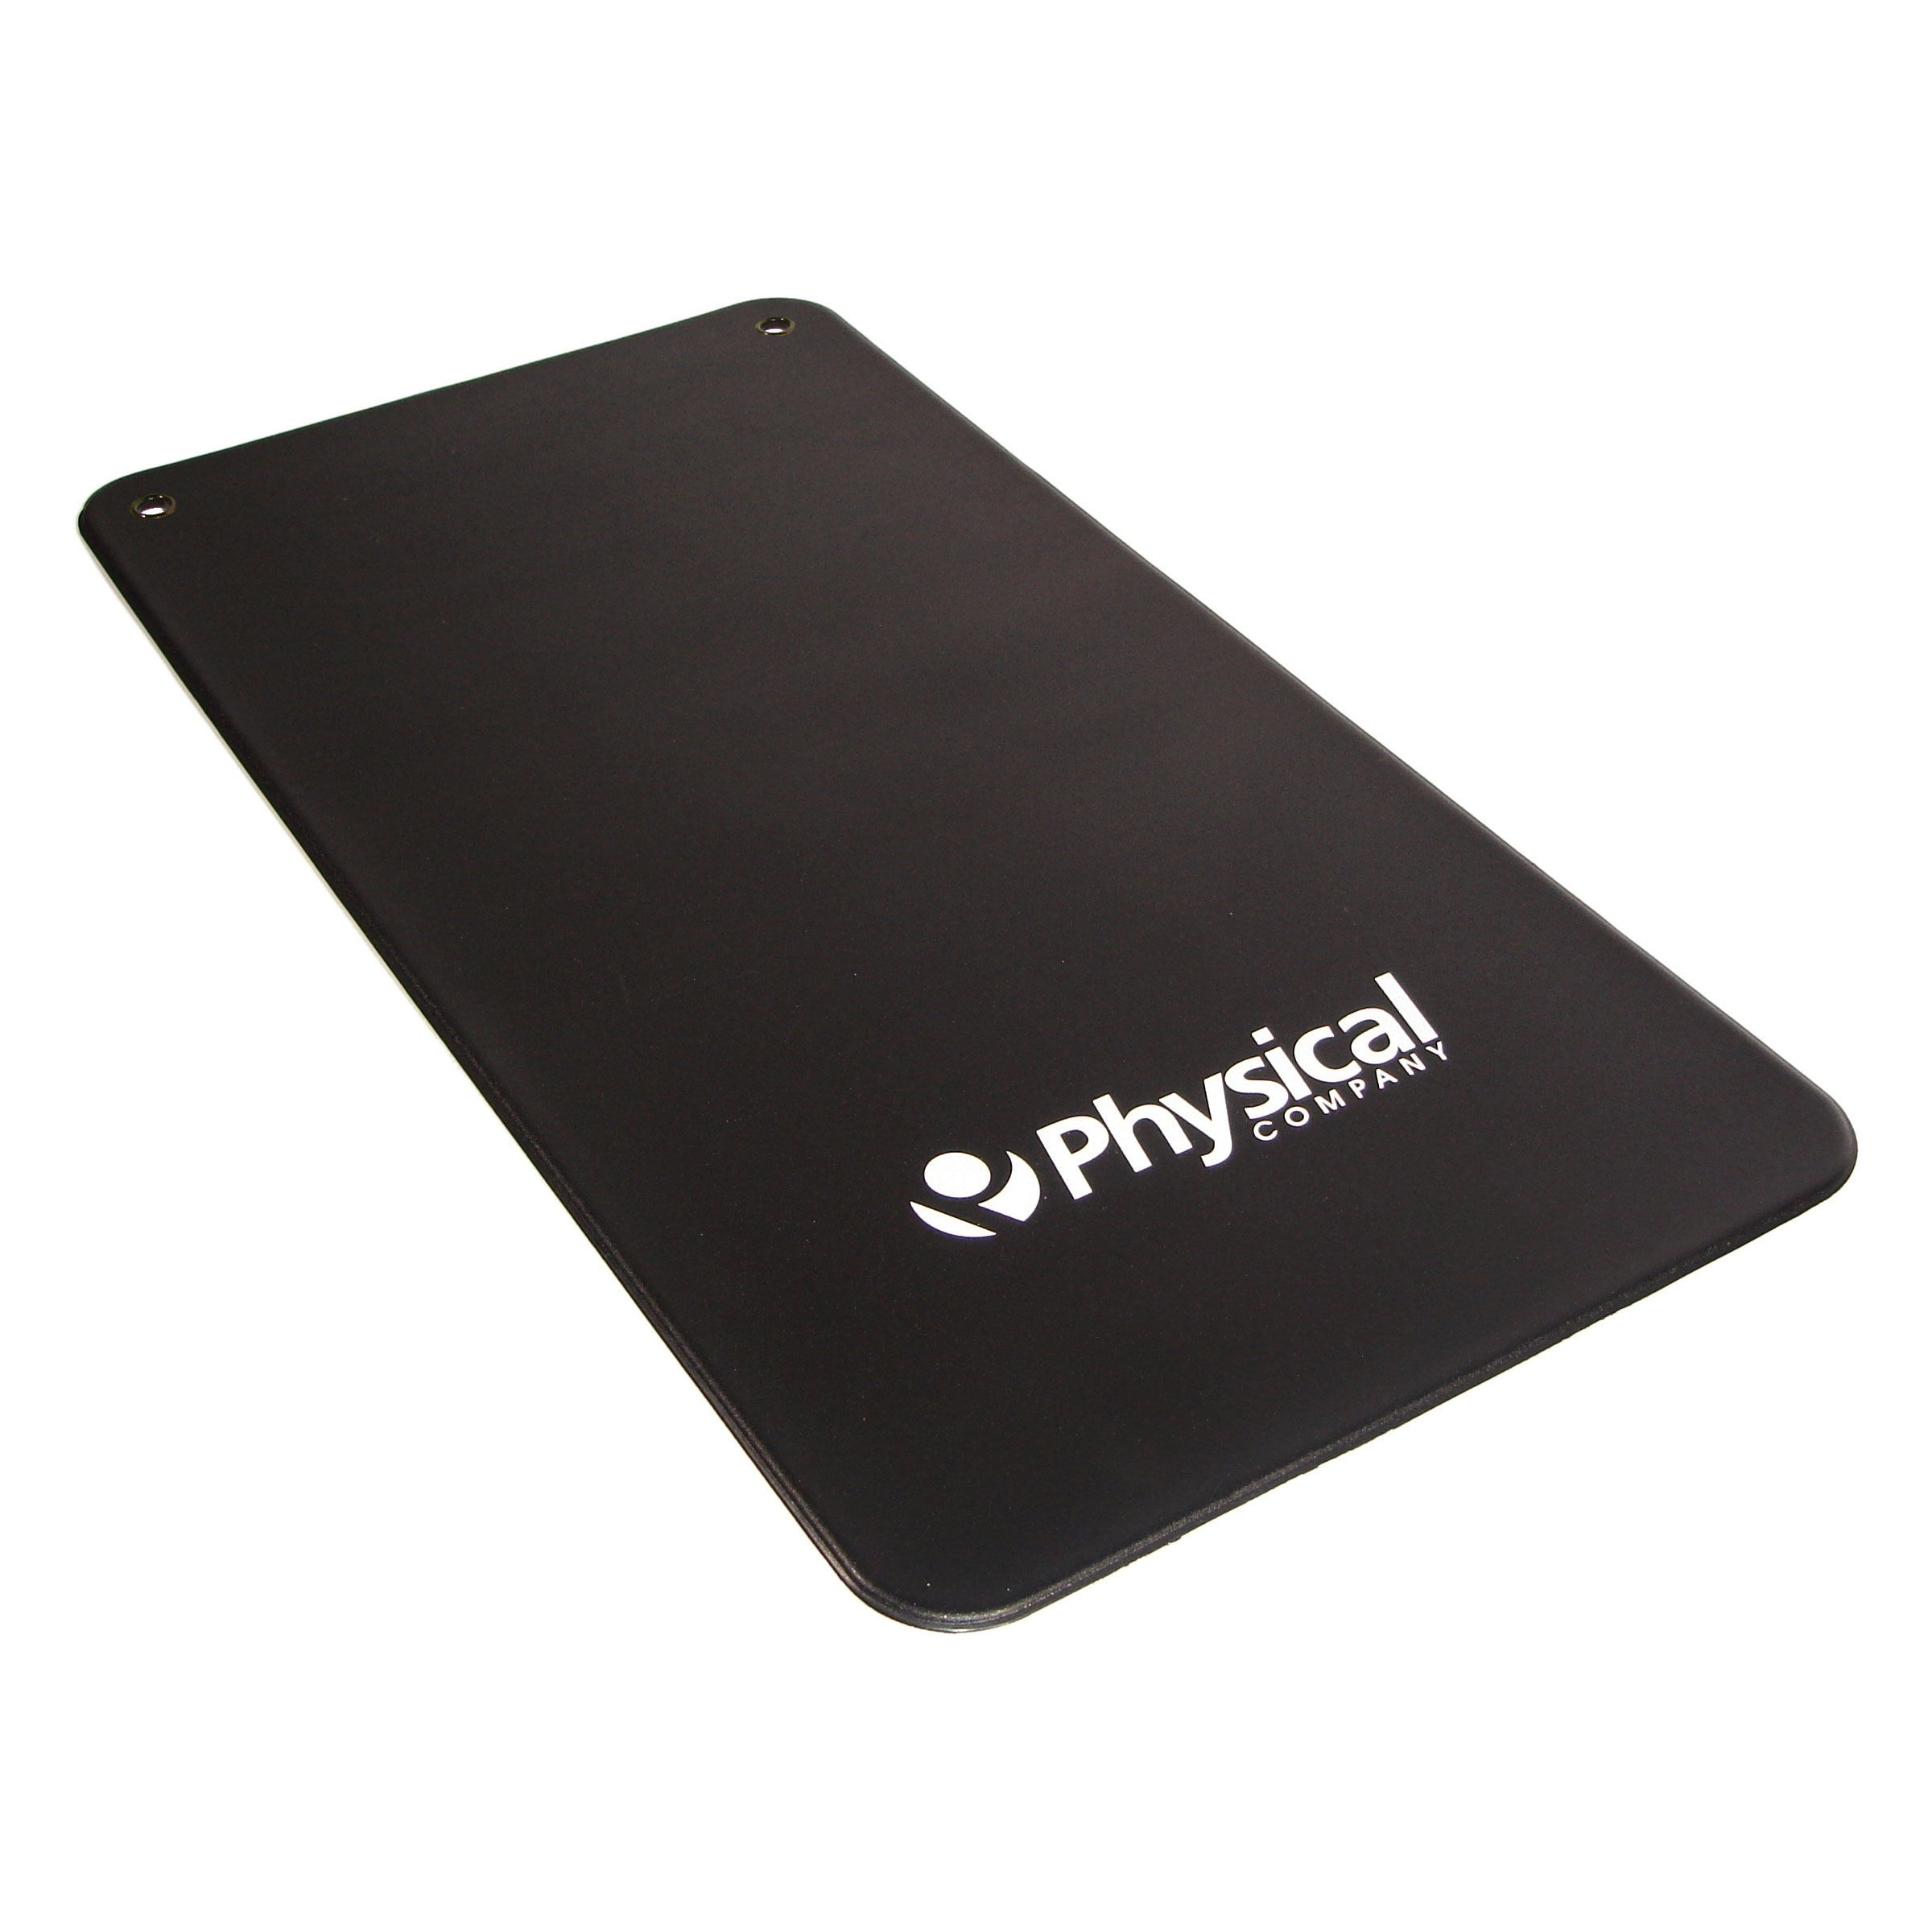 9.5mm Vinyl Exercise Mat - Black (With Eyelets)